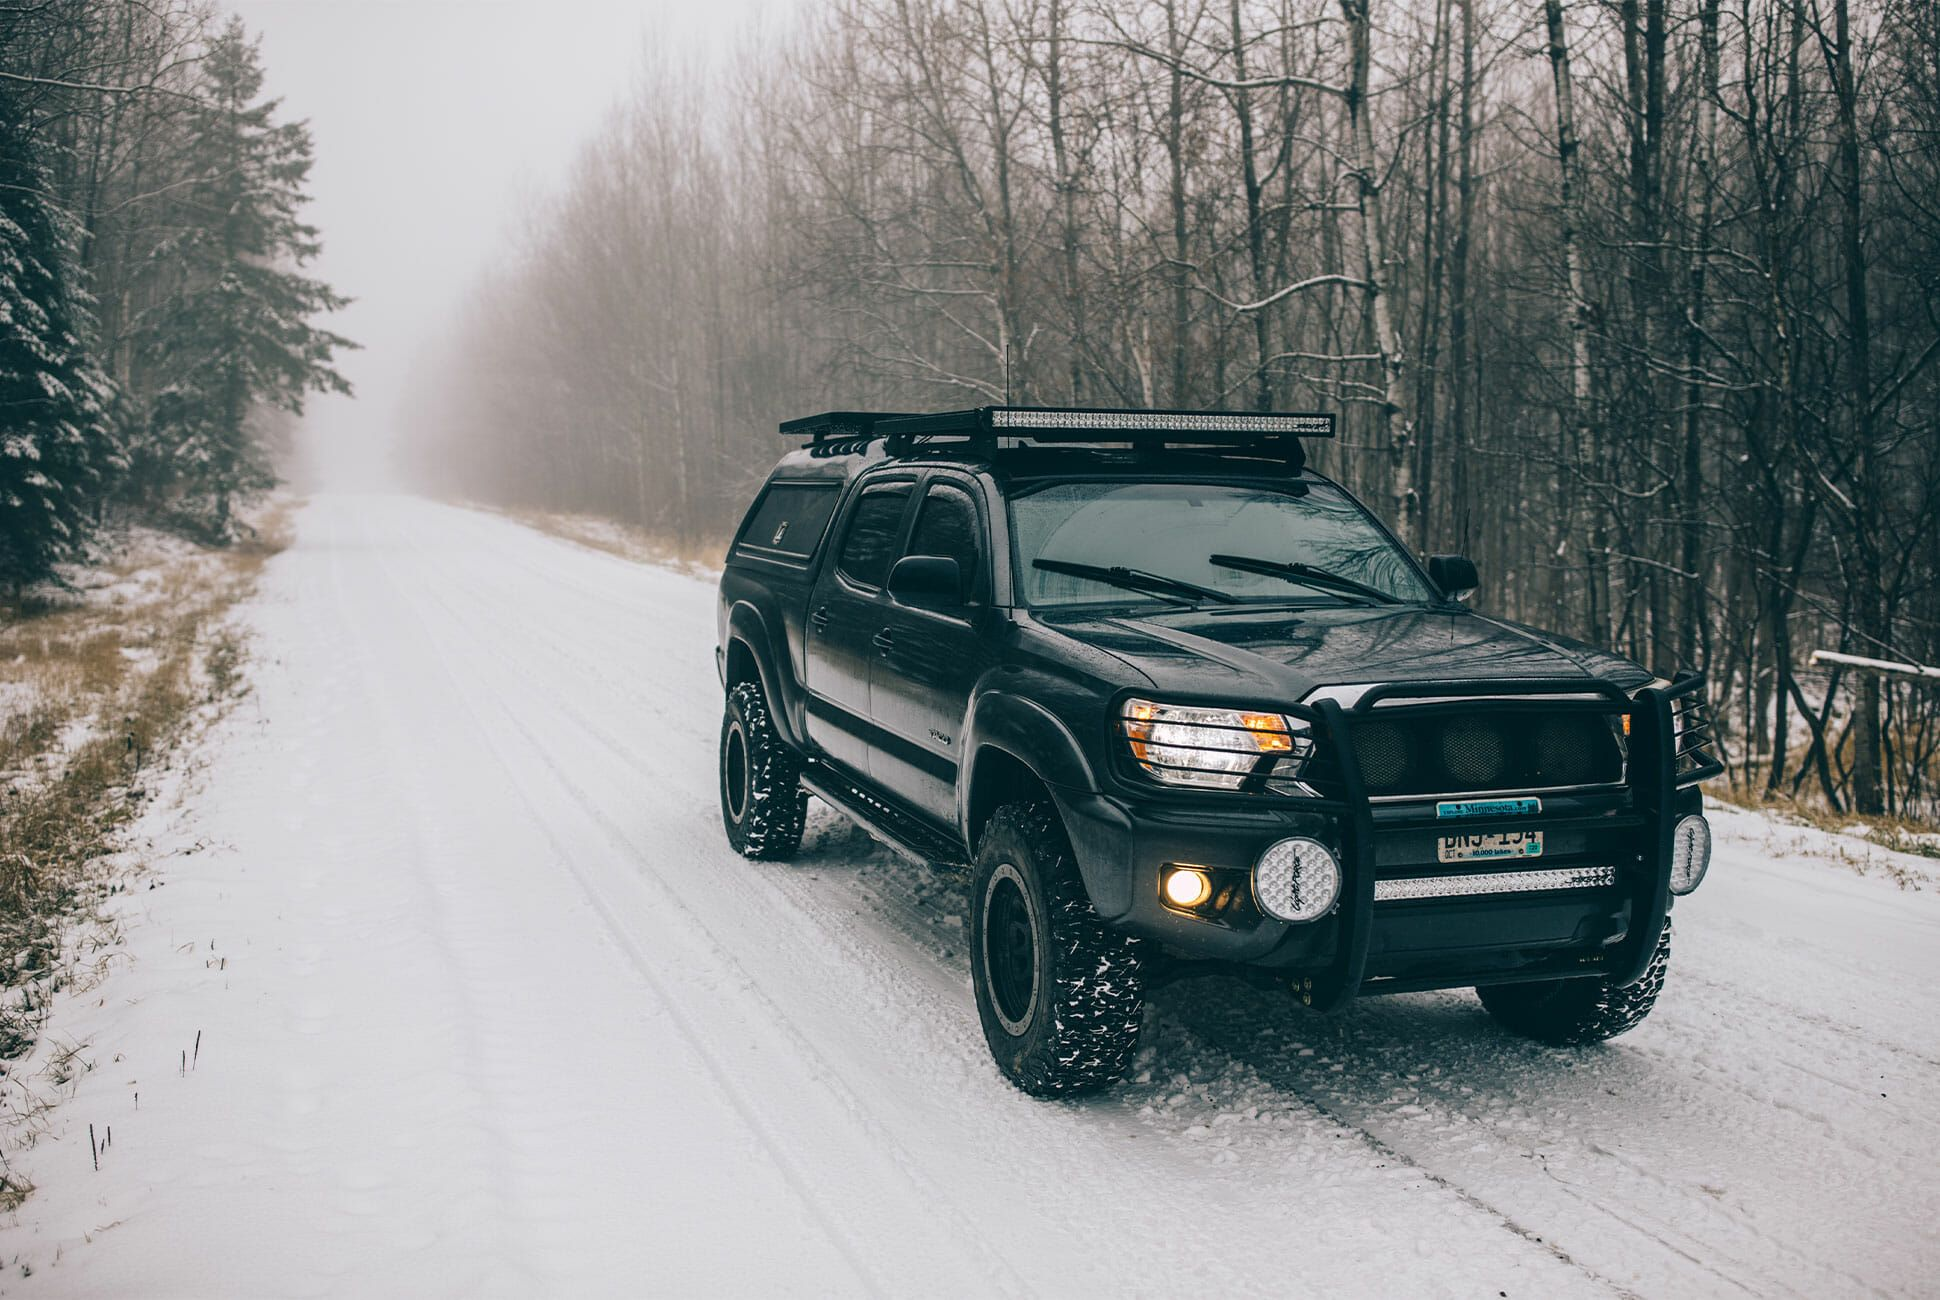 How To Boost The Off Road Capability Of A Toyota Tacoma Bull Gear Patrol